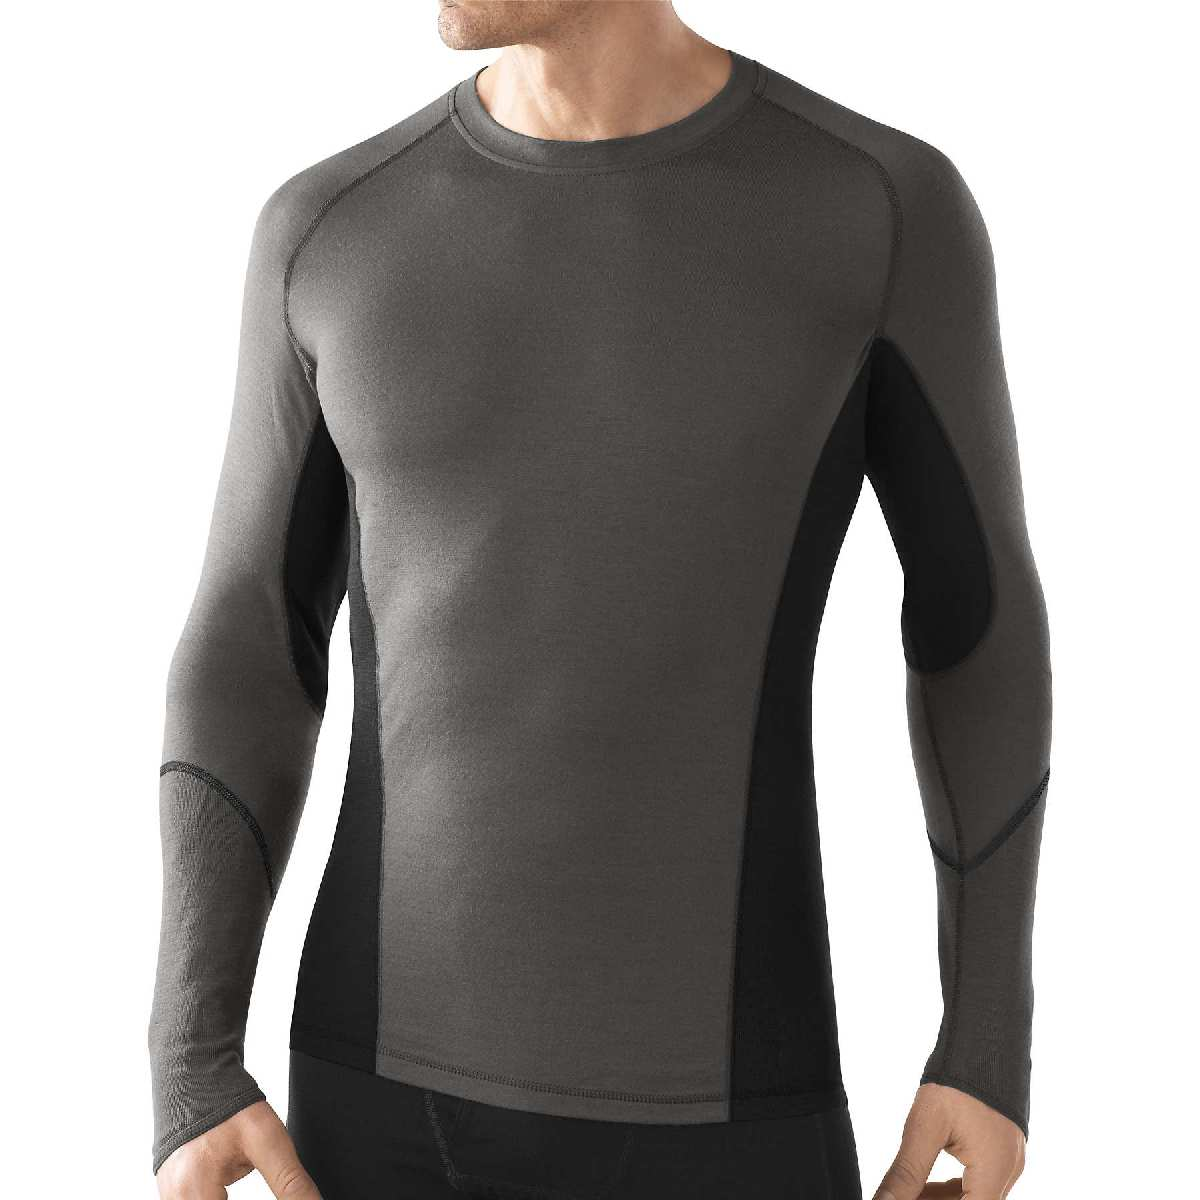 SmartWool NTS Light 195 Crew Long Sleeve Base Layer Men's Size M Graphite U.S.A. & Canada